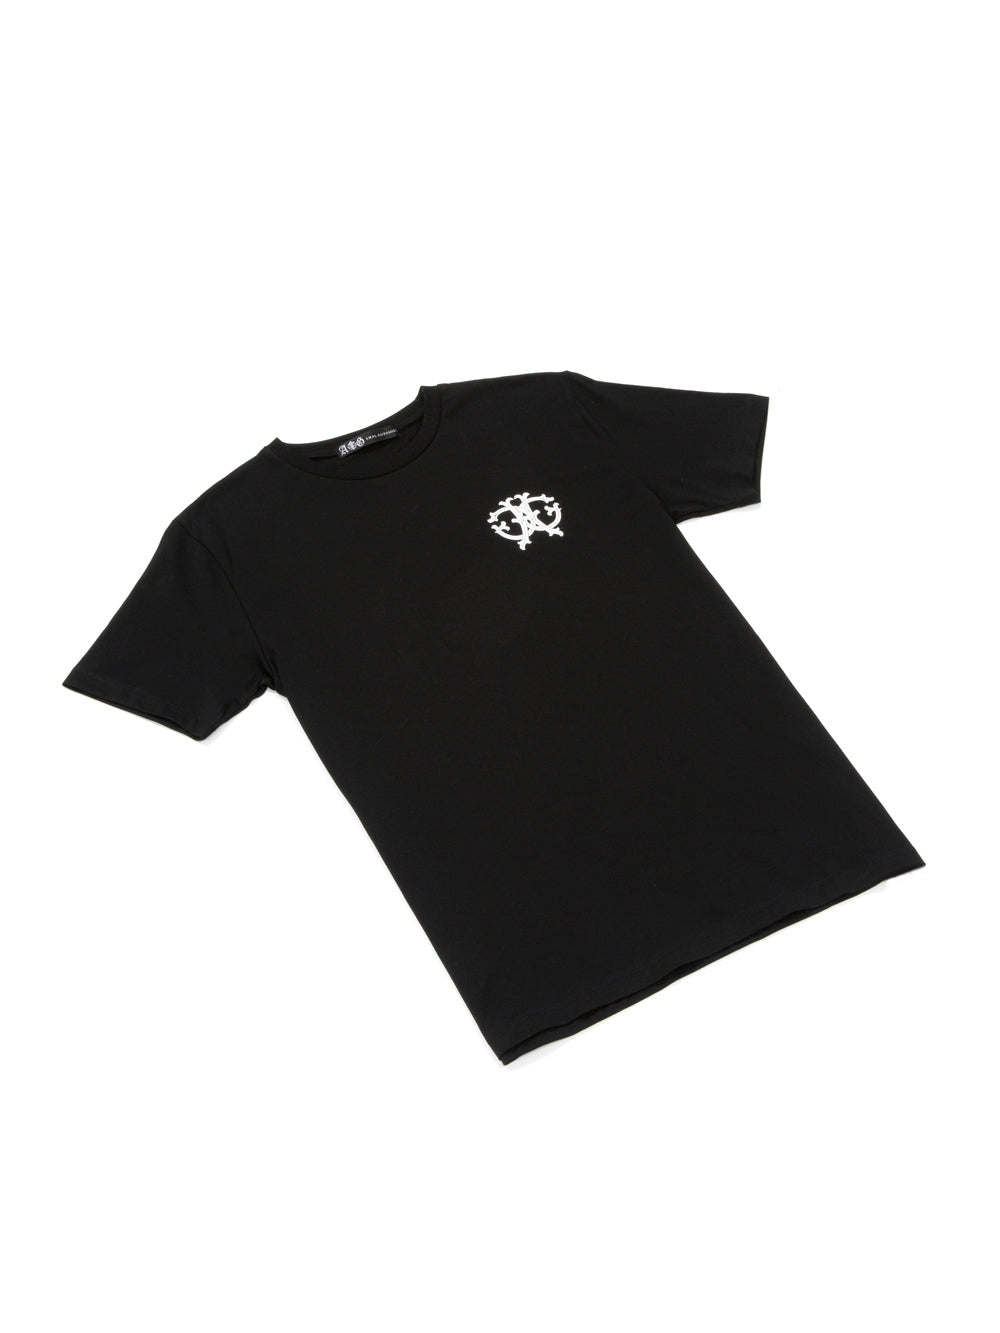 【4day's Special】FDL CROSS T-SHIRT